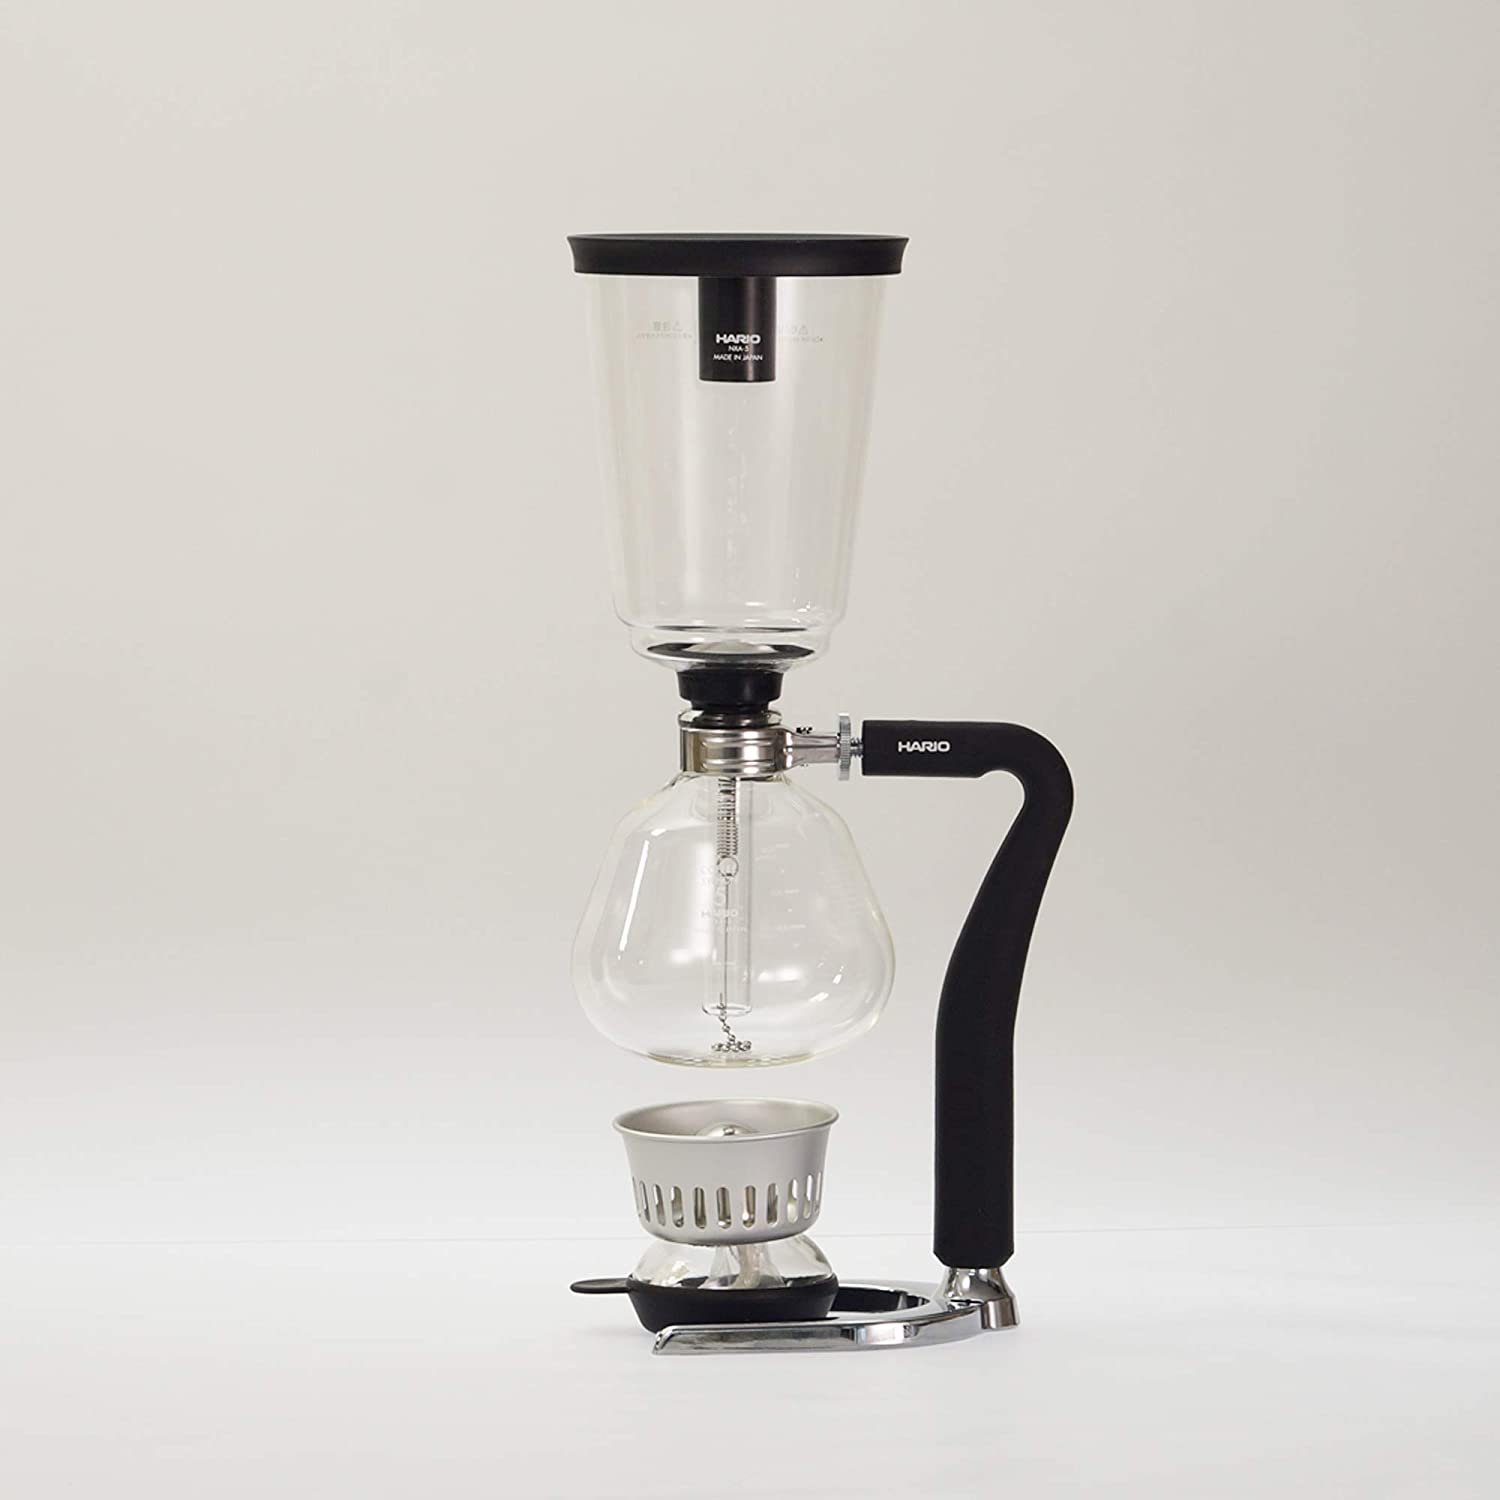 Hario NEXT Glass Syphon Coffee Maker with Silicone Handle, 5-Cup,